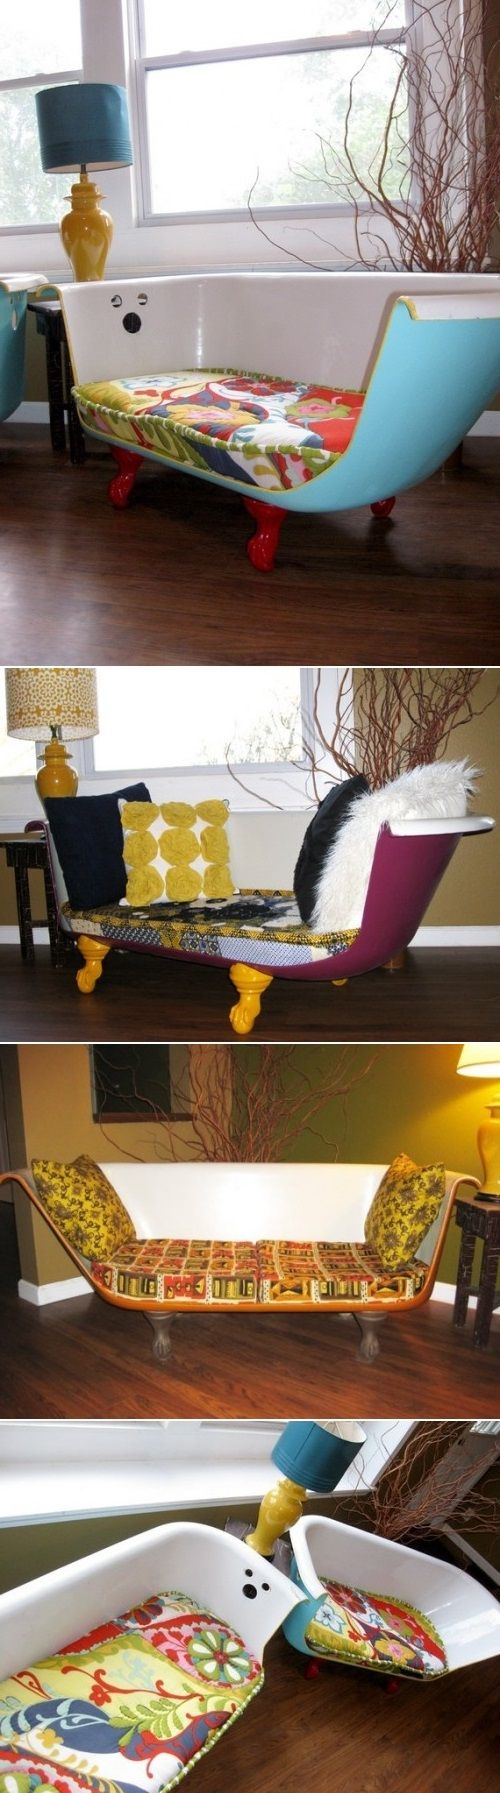 DIY Cast Iron Bathtub Couches. So very Breakfast At Tiffany's